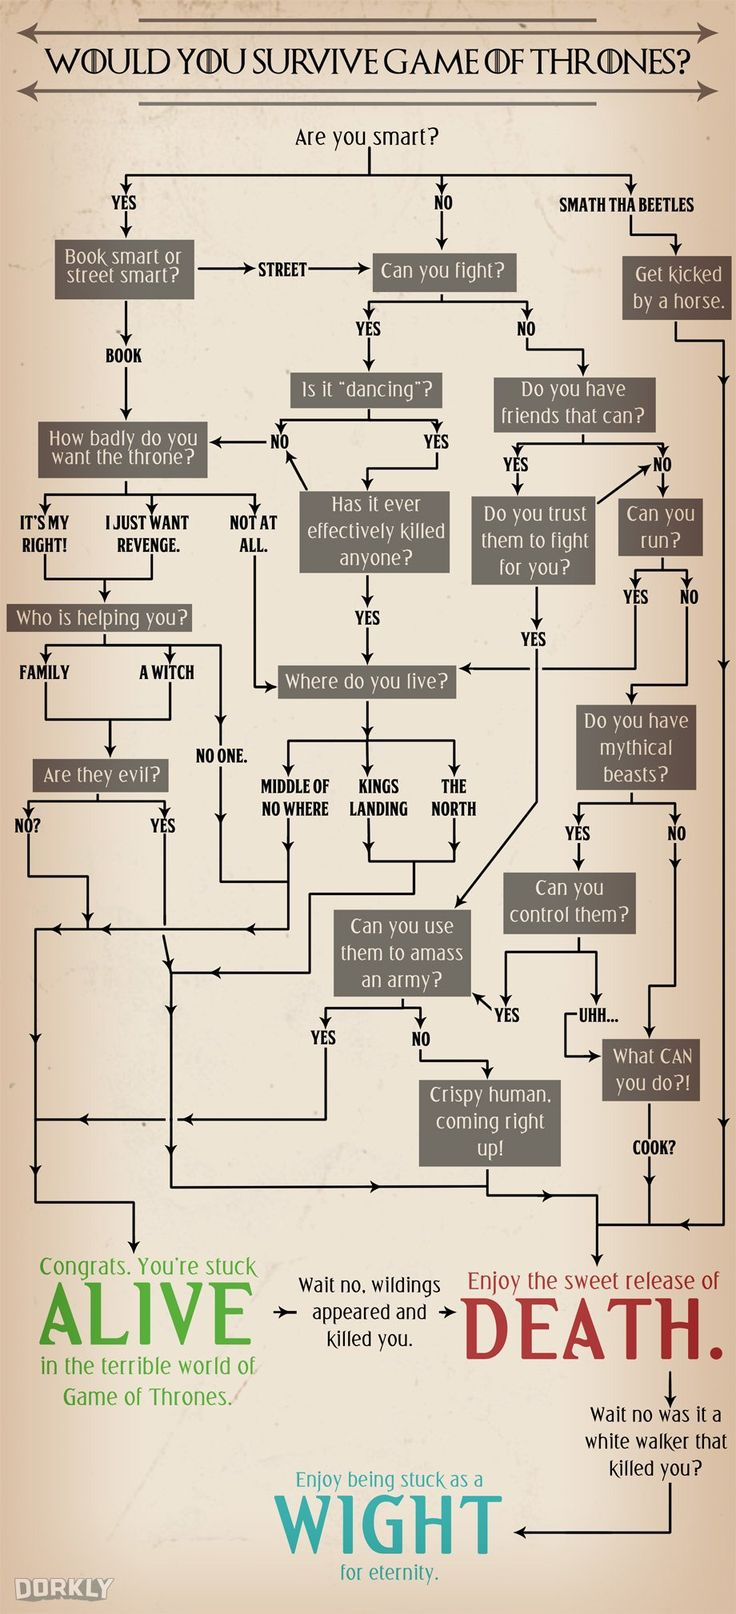 Flowchart: Would You Survive In Game of Thrones?